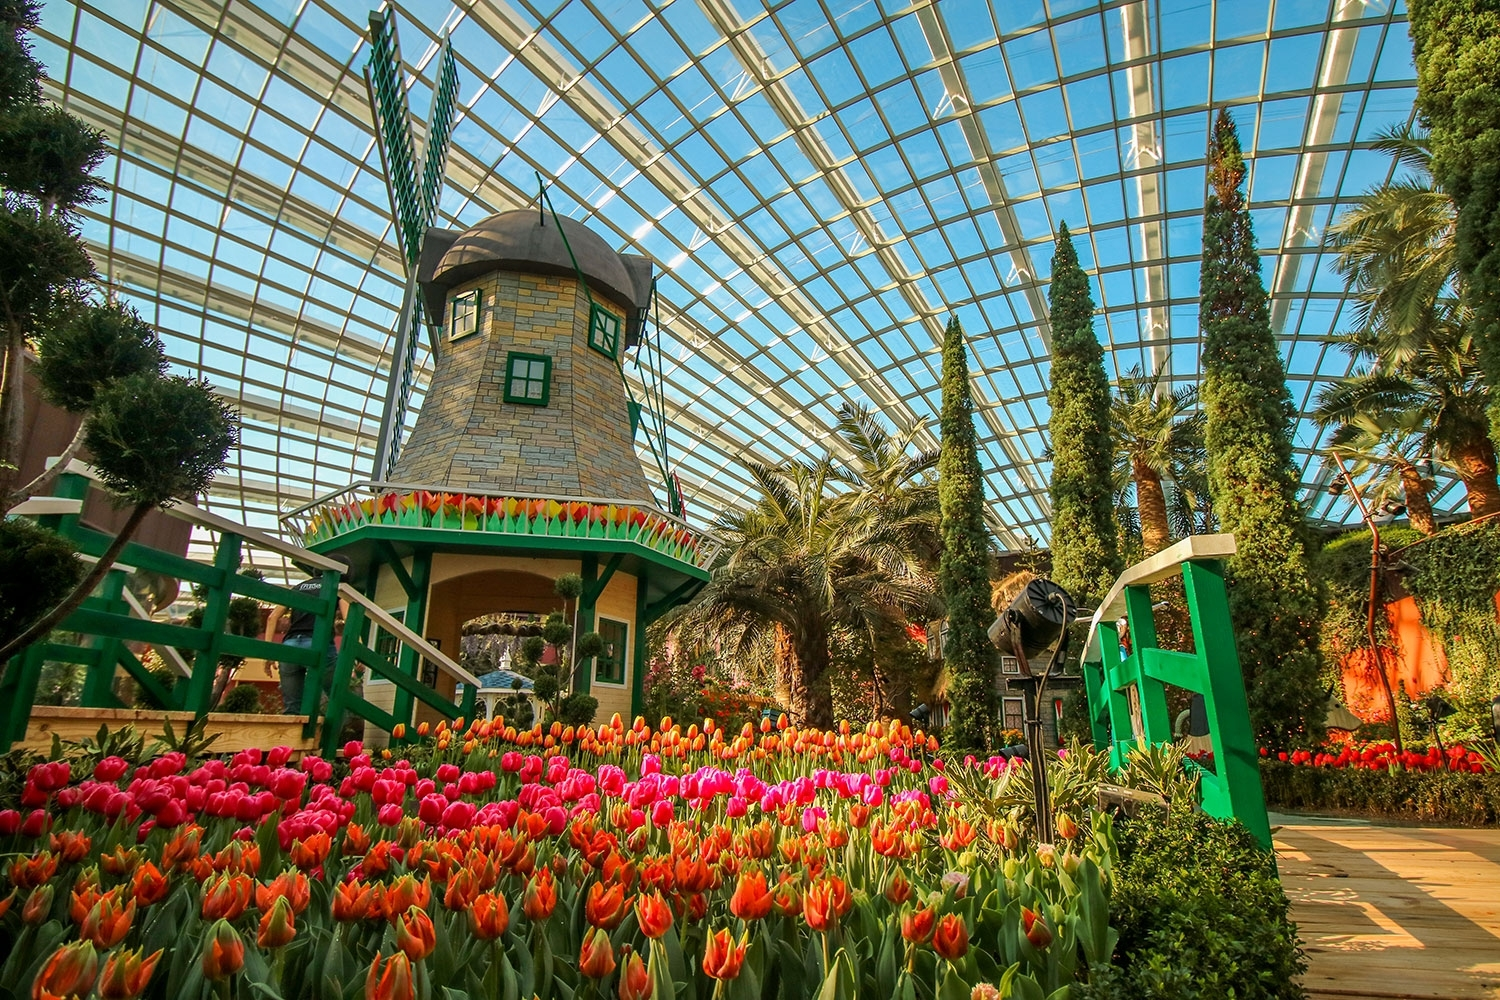 Singapore's Largest Tulip Festival, Tulipmania, Returns To Gardens in Flower Festival At Garden By The Bay